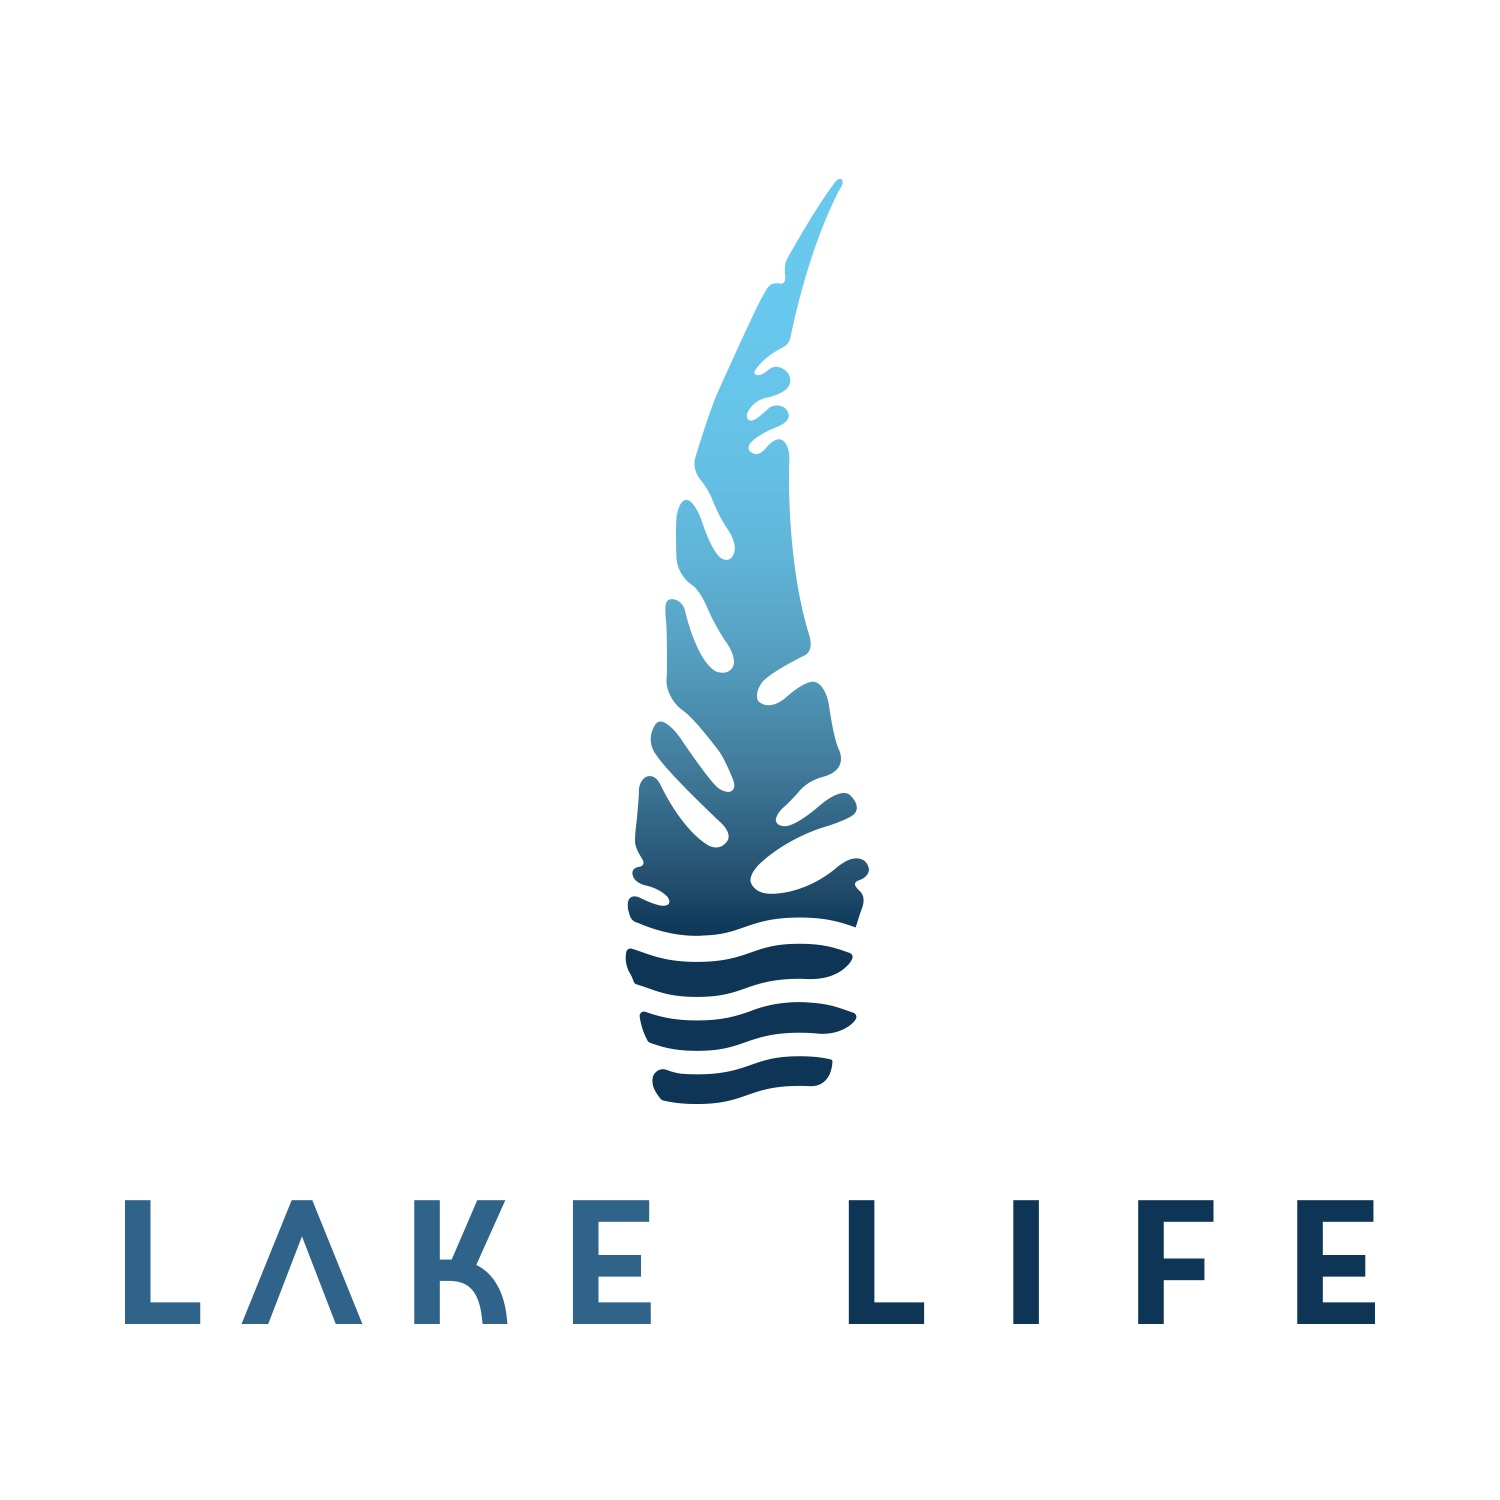 Lake Life email: lakelifestudio@gmail.com